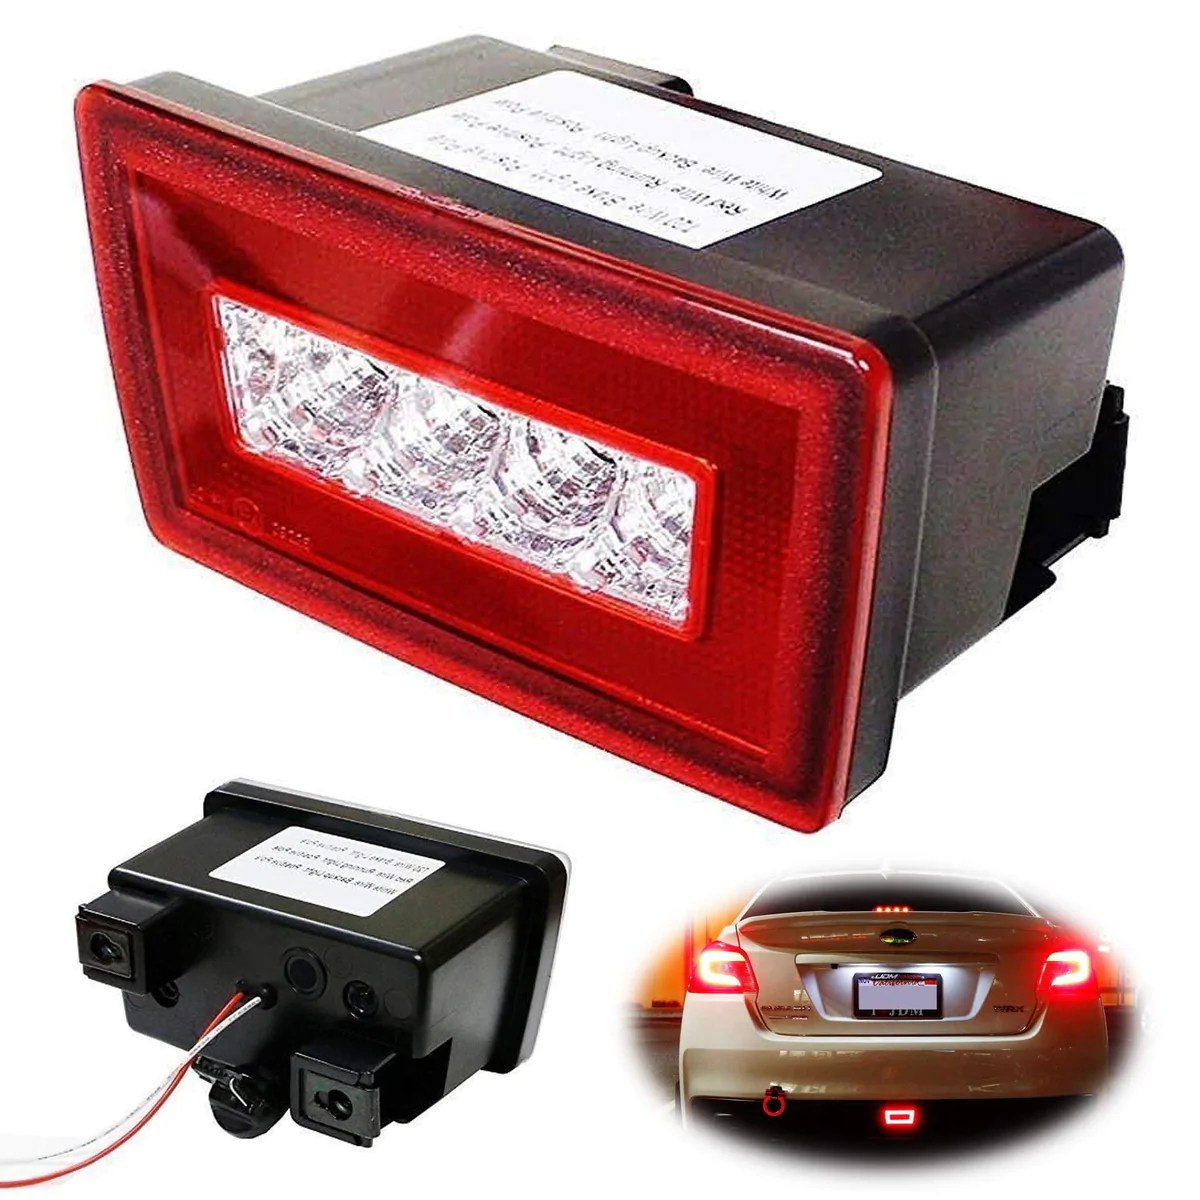 small resolution of red or smoked lens 3 in 1 led rear fog light assembly kit tail brake backup reverse light for 2011 up subaru impreza wrx sti or vx crosstrek with wire